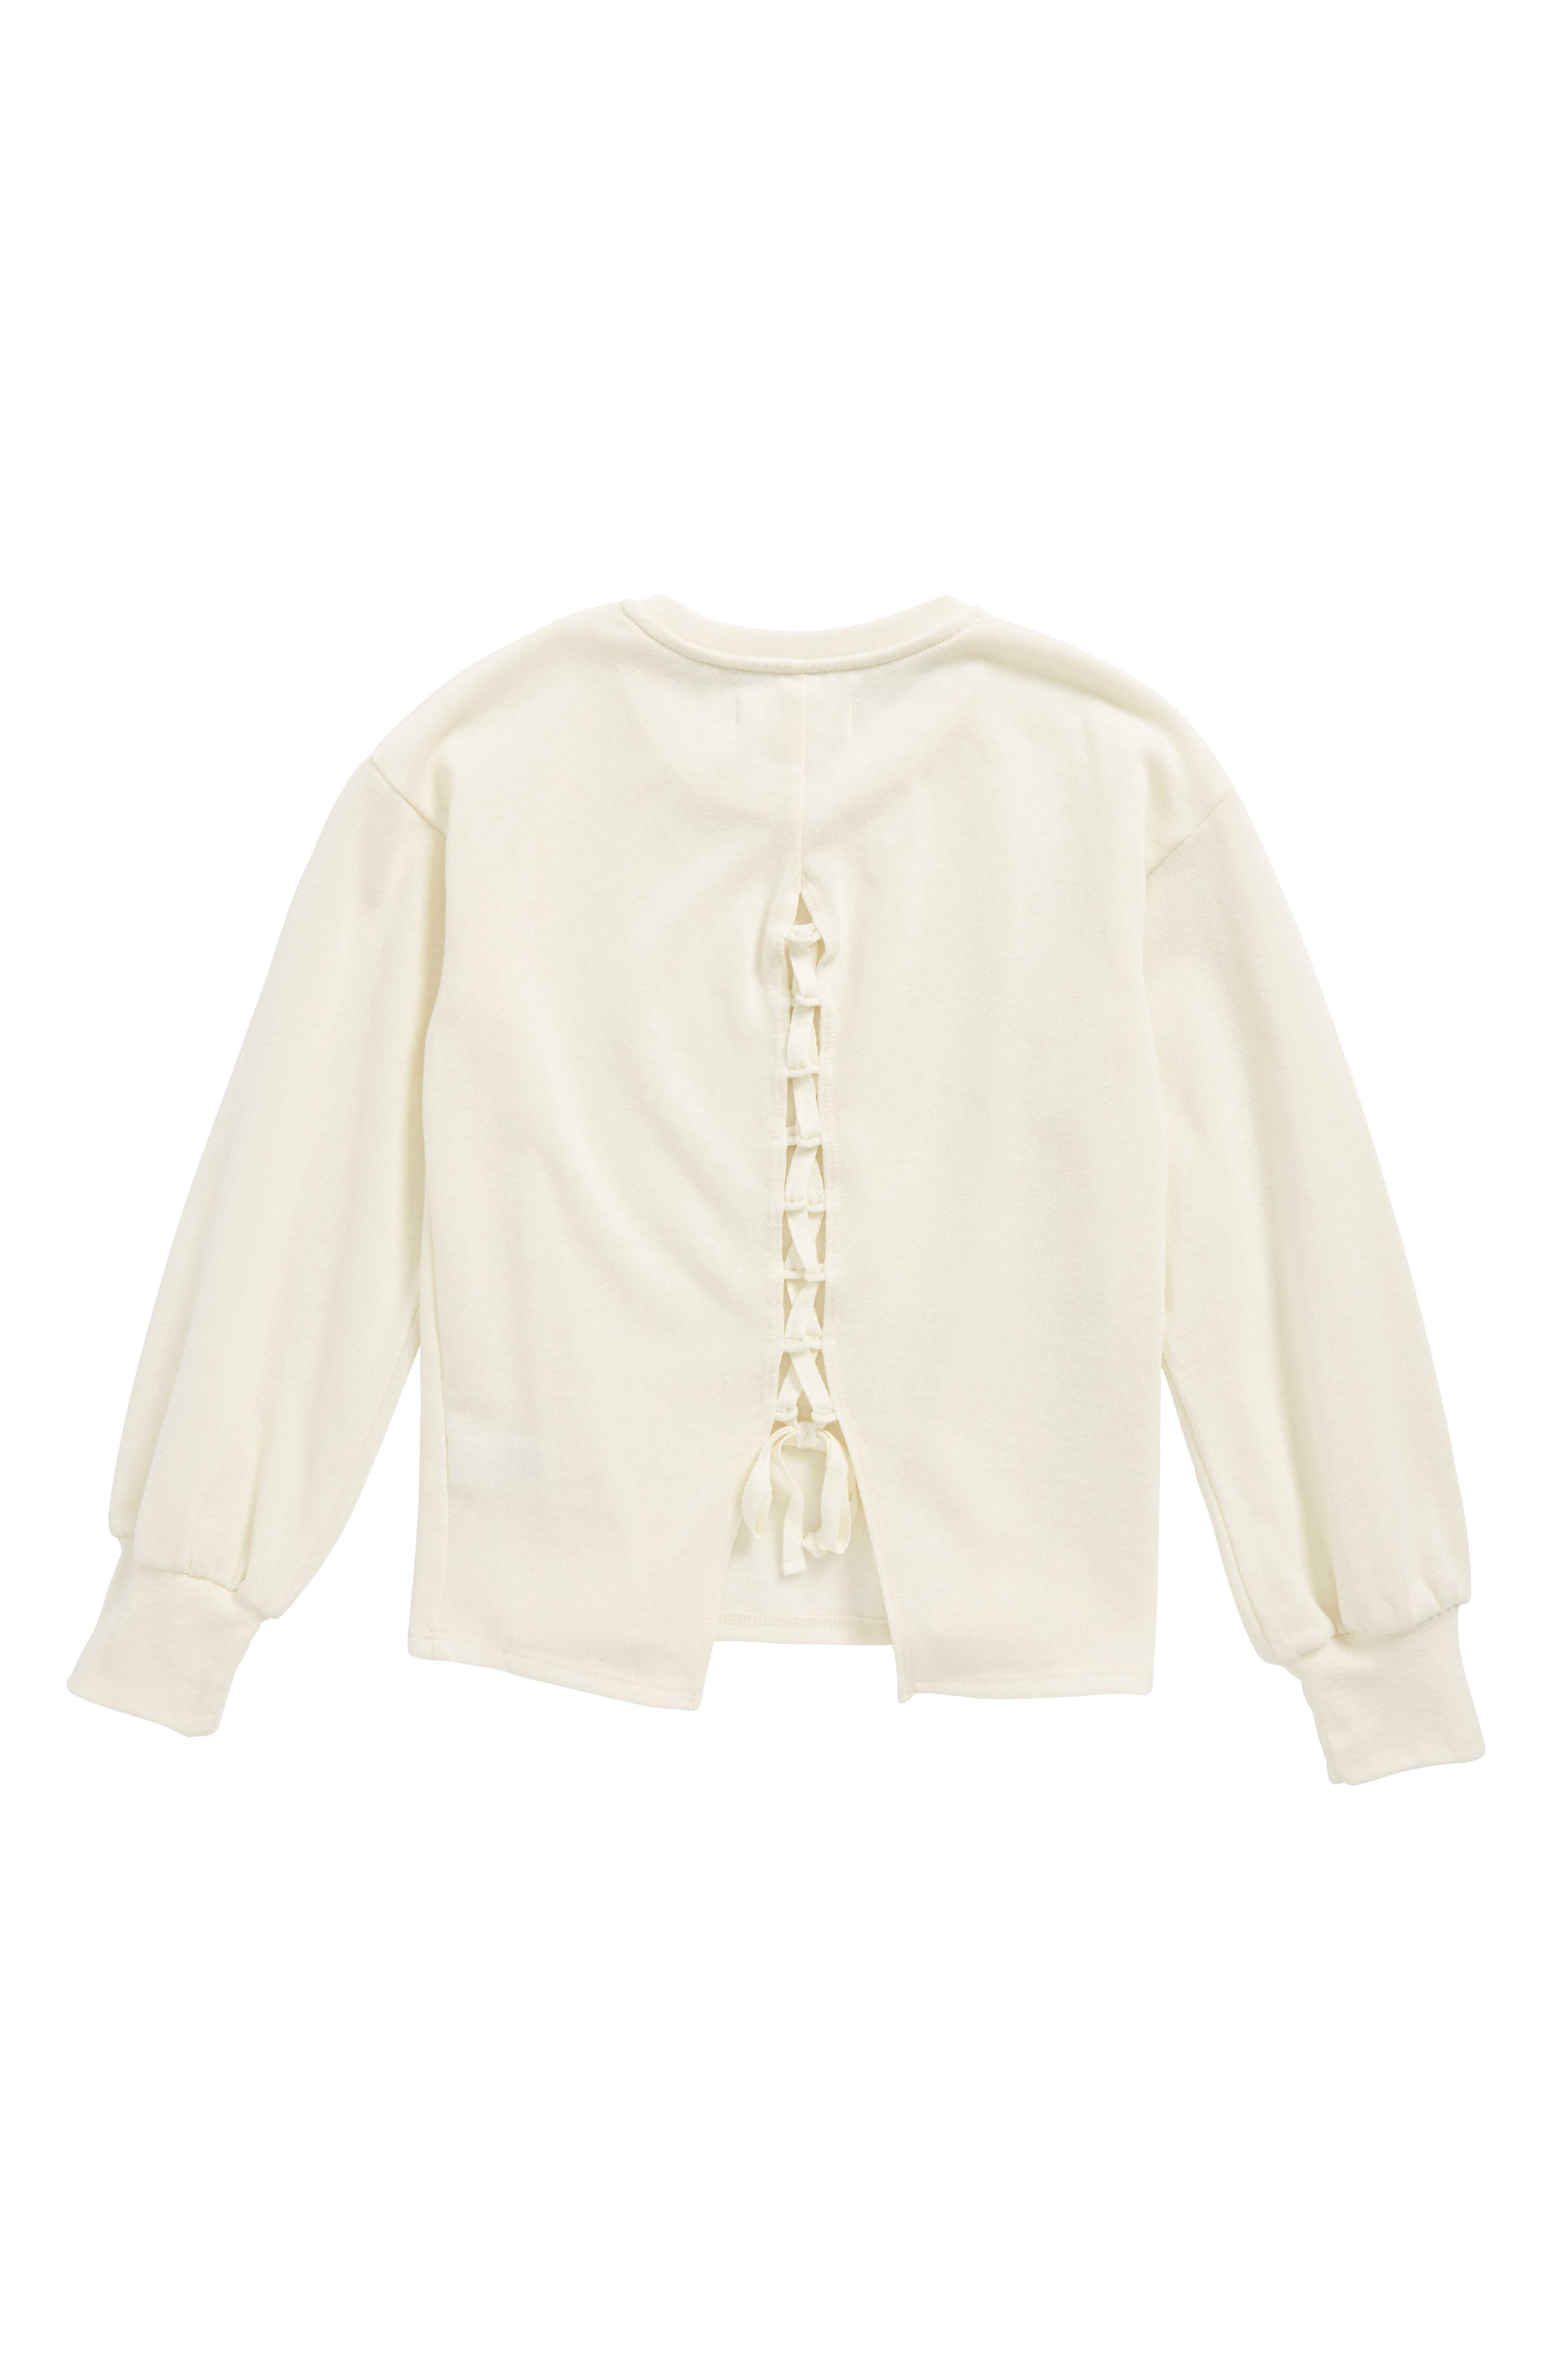 Lace-Up Back Fleece Pullover,                             Alternate thumbnail 2, color,                             Ivory Egret